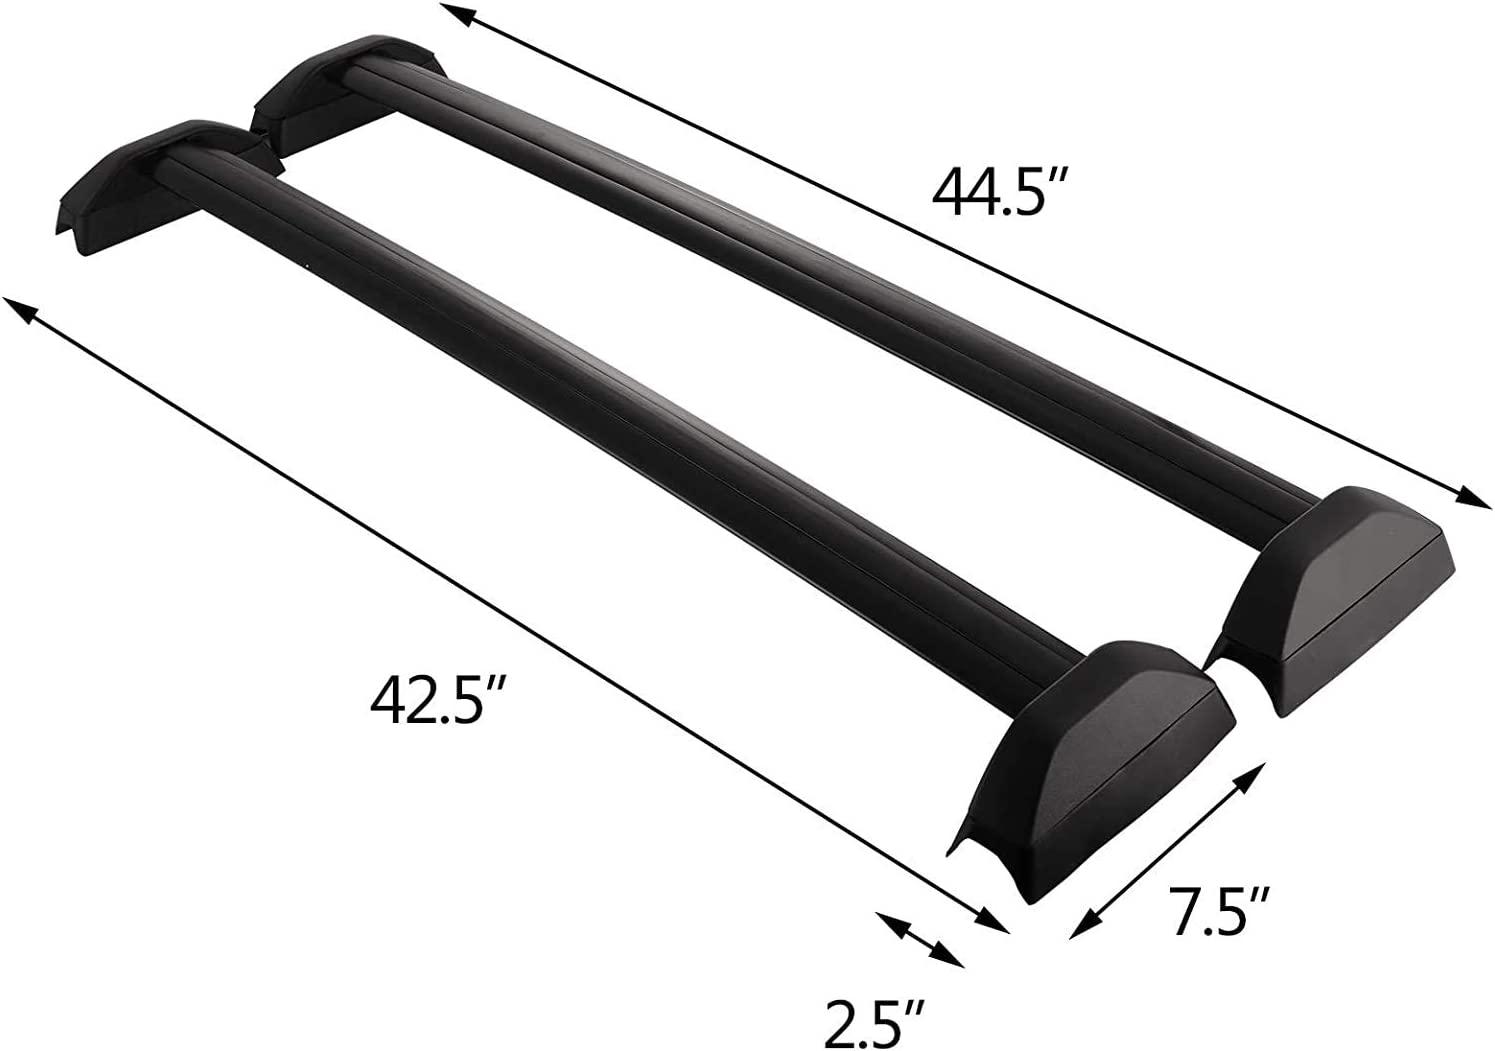 VEVOR Poly Roof Bars For Hon-da CRV 02-06 Fixed Point Wing Black Luggage Carrier CE Roof Rack Cross Bar Set For Hon-da CRV 2002-2006 Top Black Aluminium